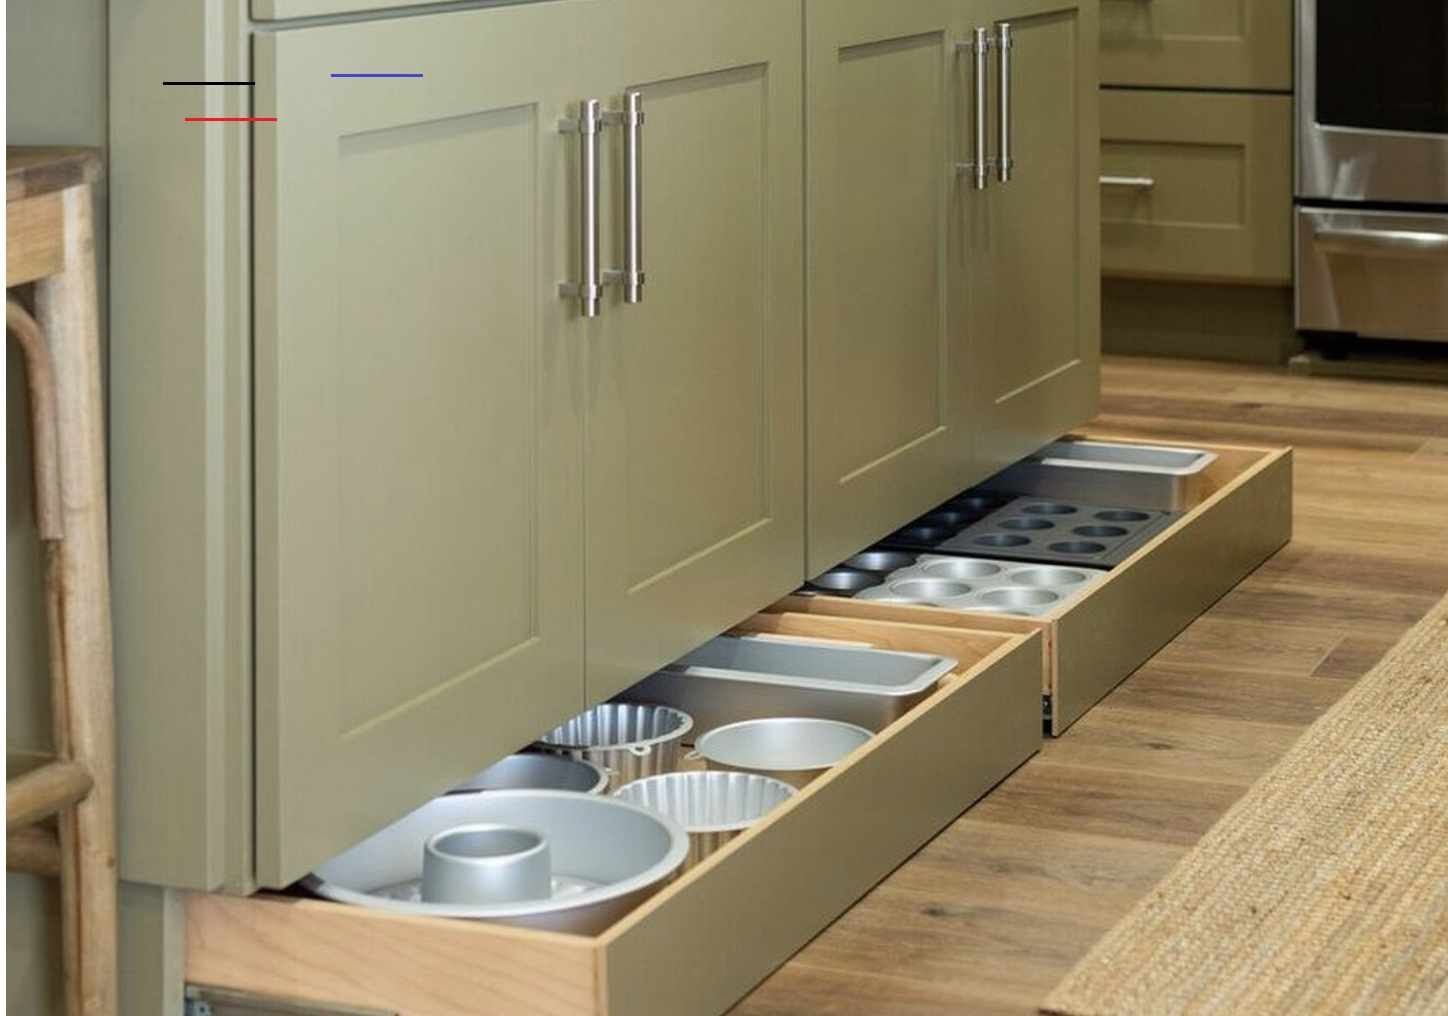 Toe Kick Drawers Are The Hidden Storage Space That Will Transform Your Kitchen Kitchenfurniture The Kitchen Can Be Quite A Quagmire When It Comes To Storag In 2020